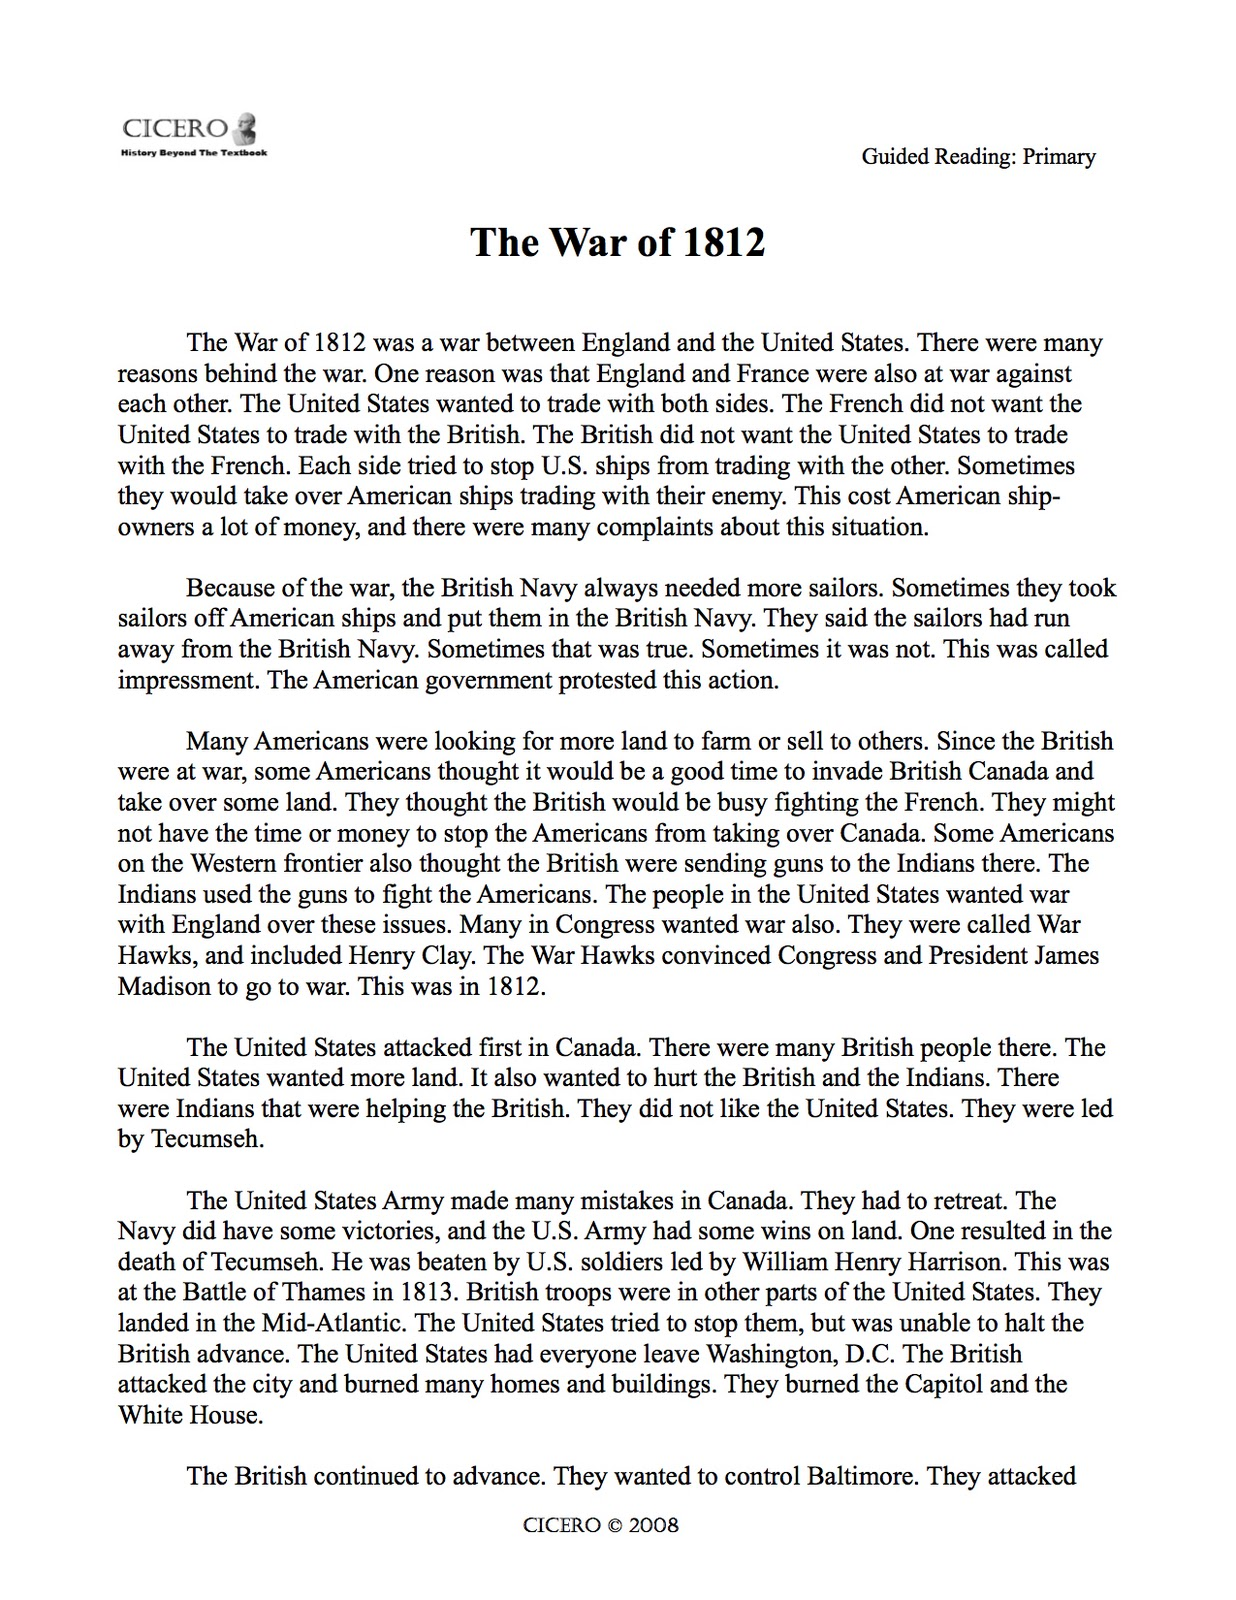 essay about war template essay about war